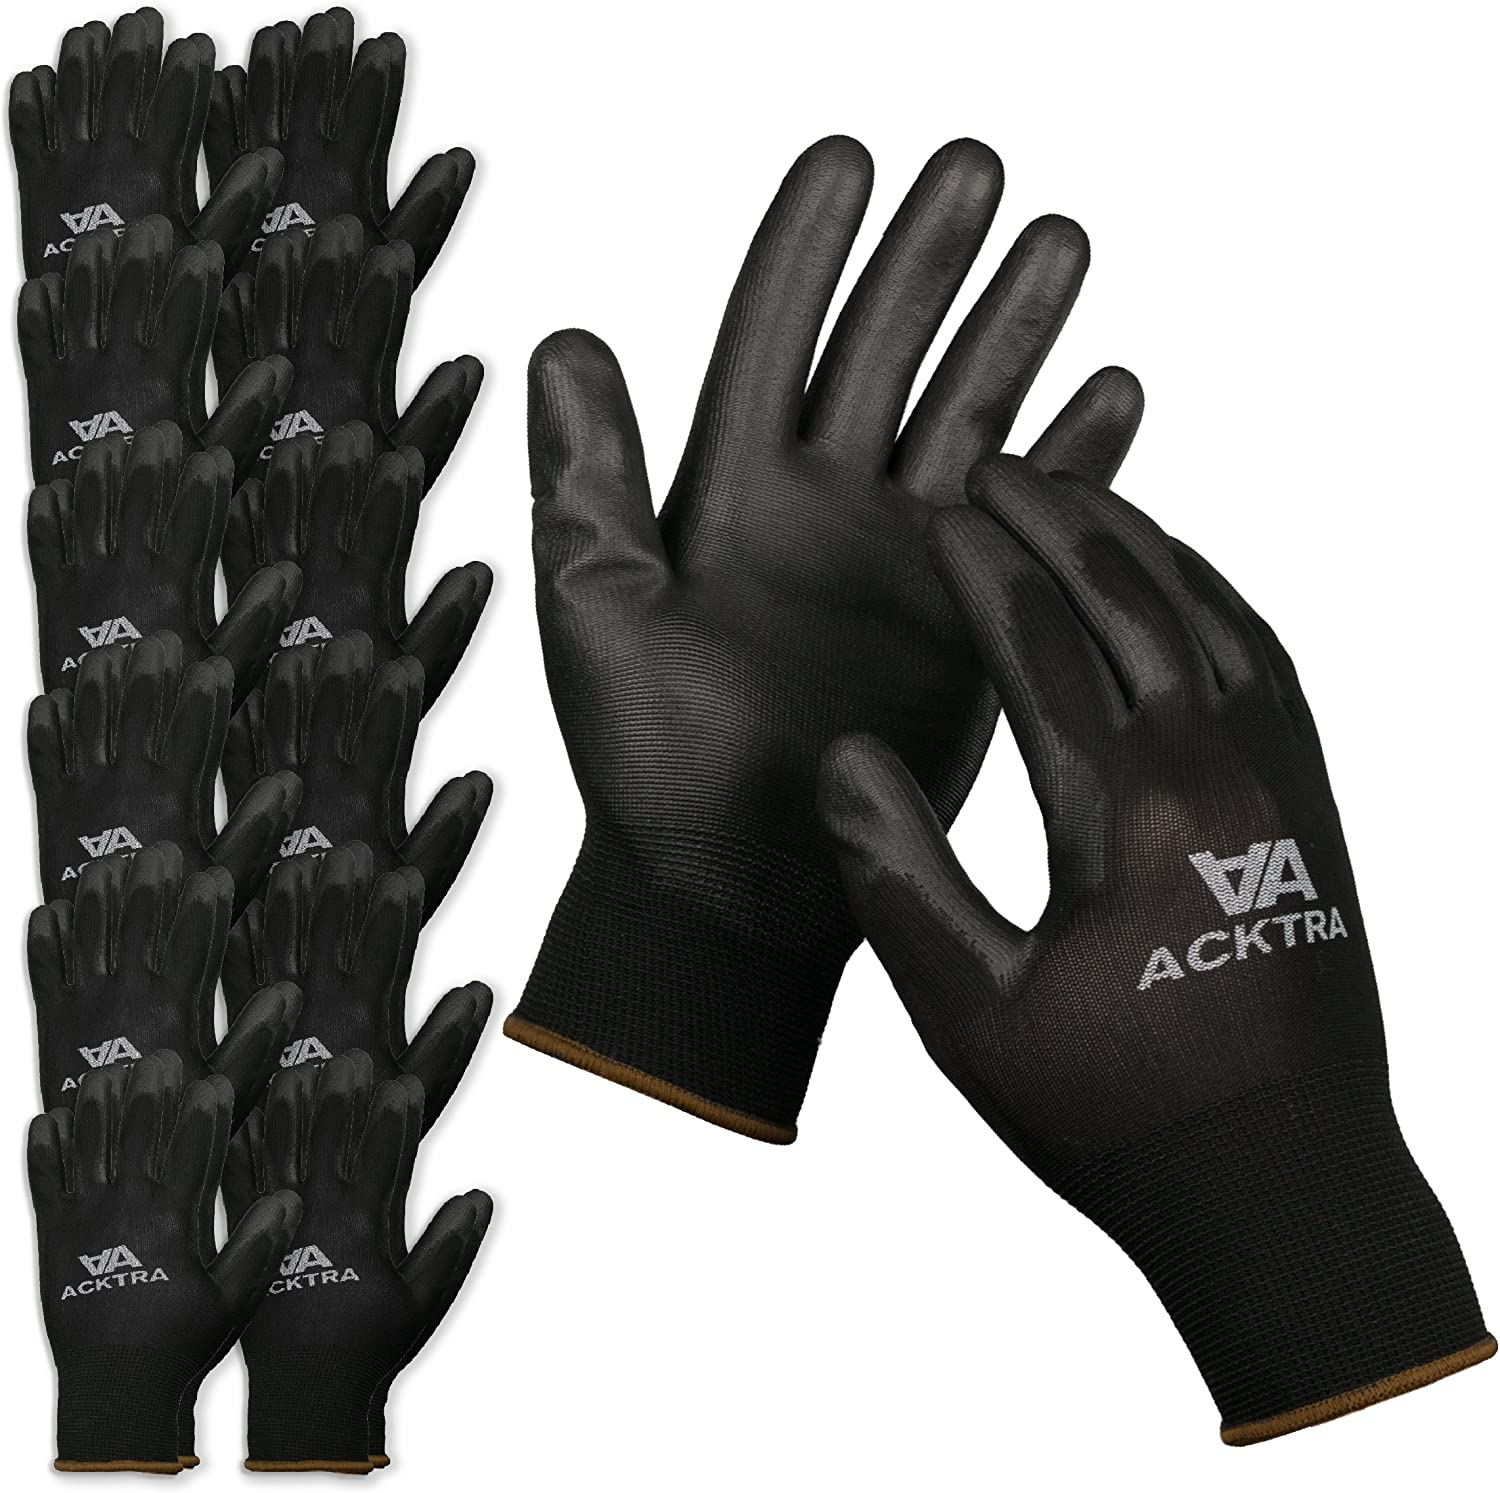 ACKTRA Ultra-Thin Polyurethane (PU) Coated Nylon Safety WORK GLOVES 12 Pairs, Knit Wrist Cuff, for Precision Work, for Men & Women, WG002 Black Polyester, Black Polyurethane, Small